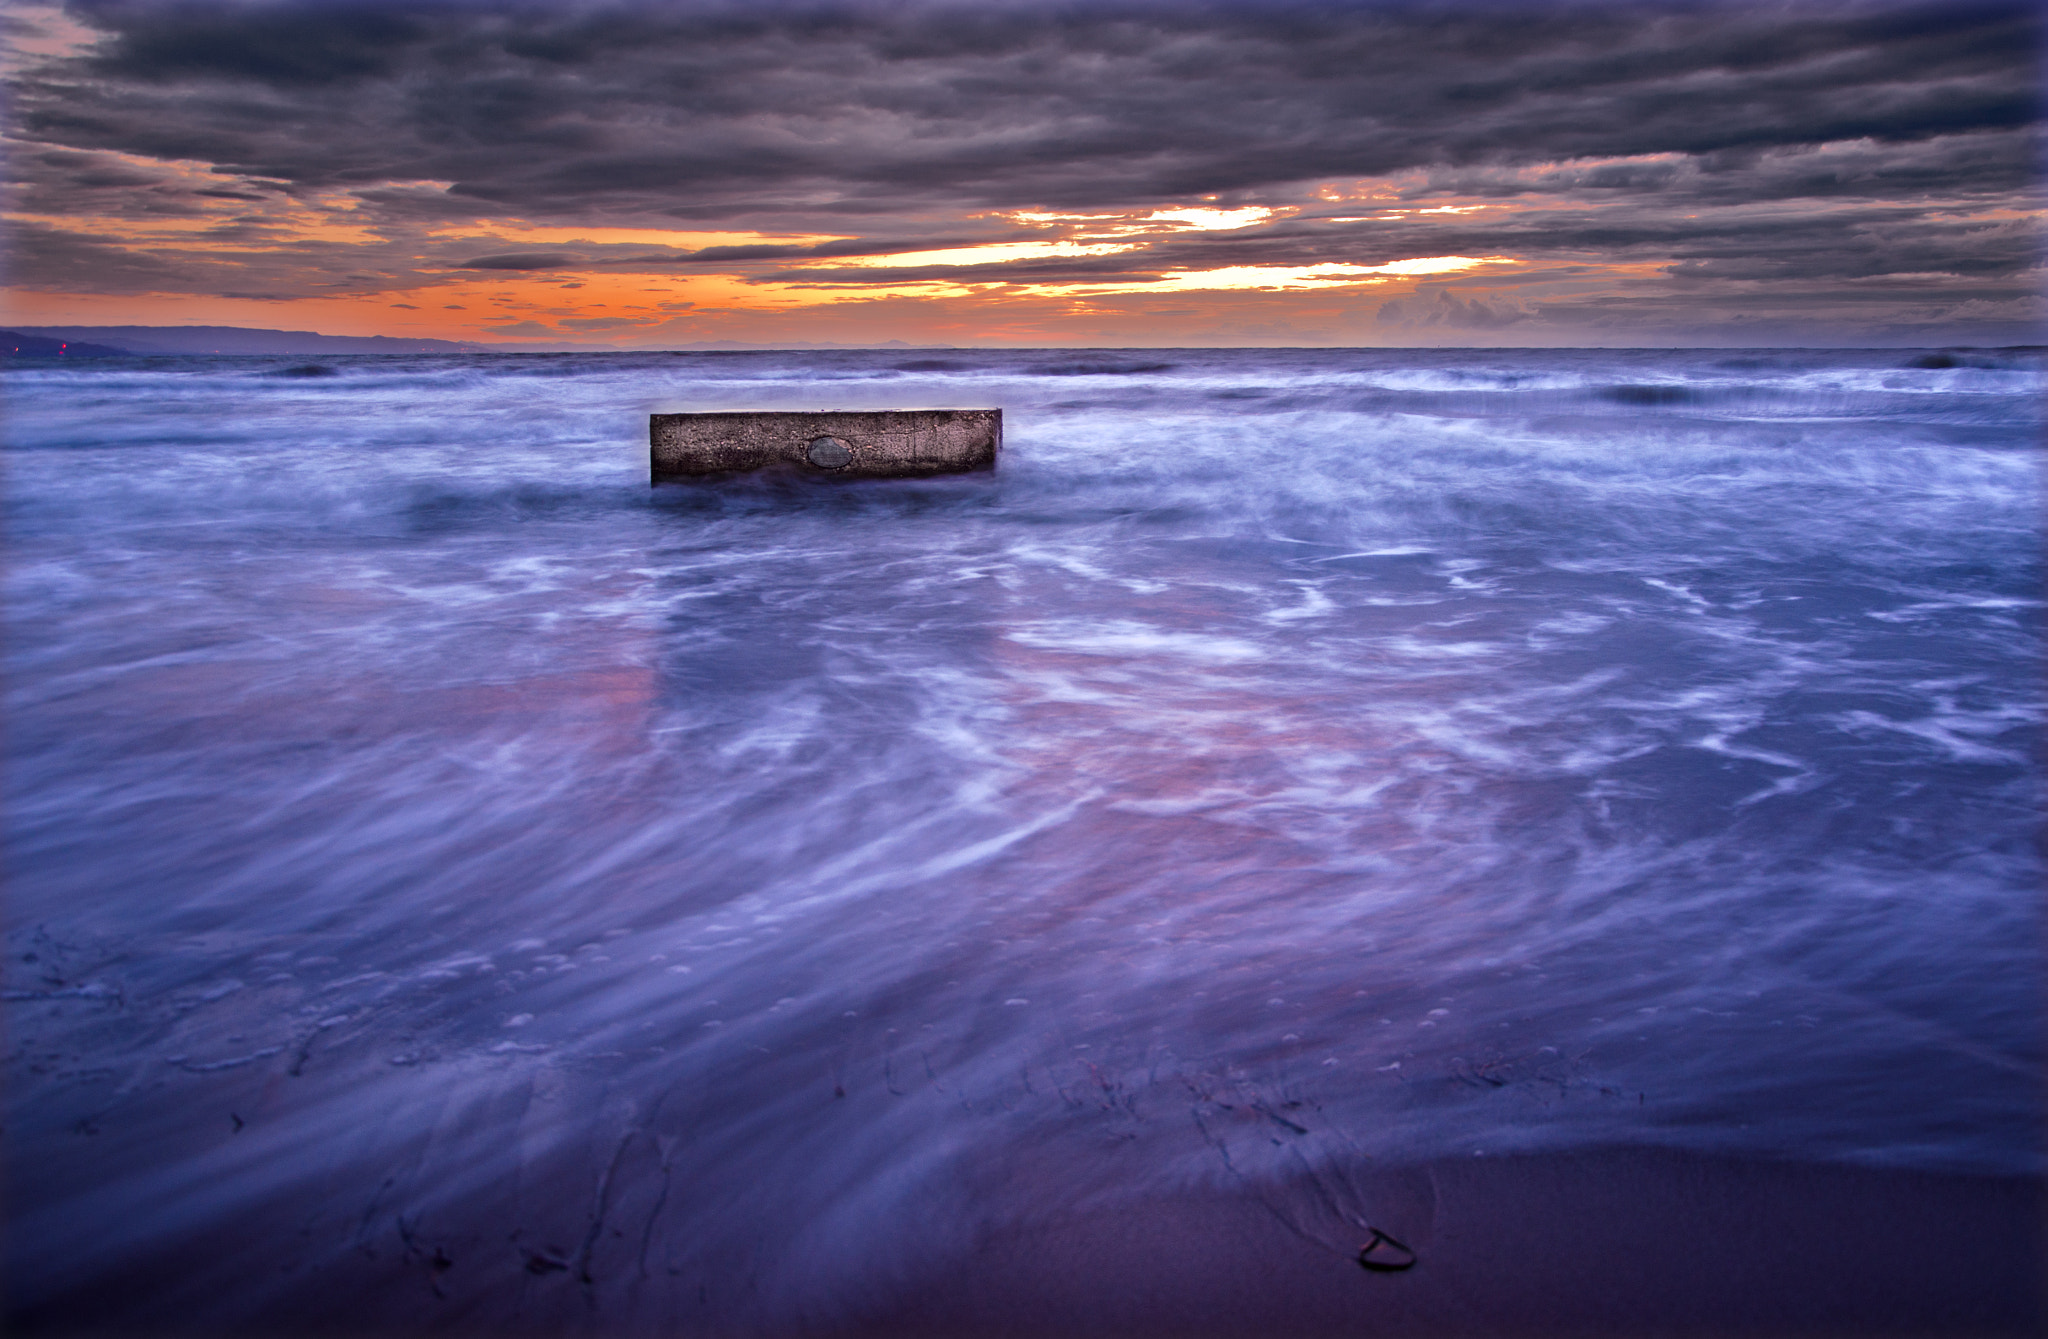 Photograph The sea in the morning by Lluis  de Haro Sanchez on 500px